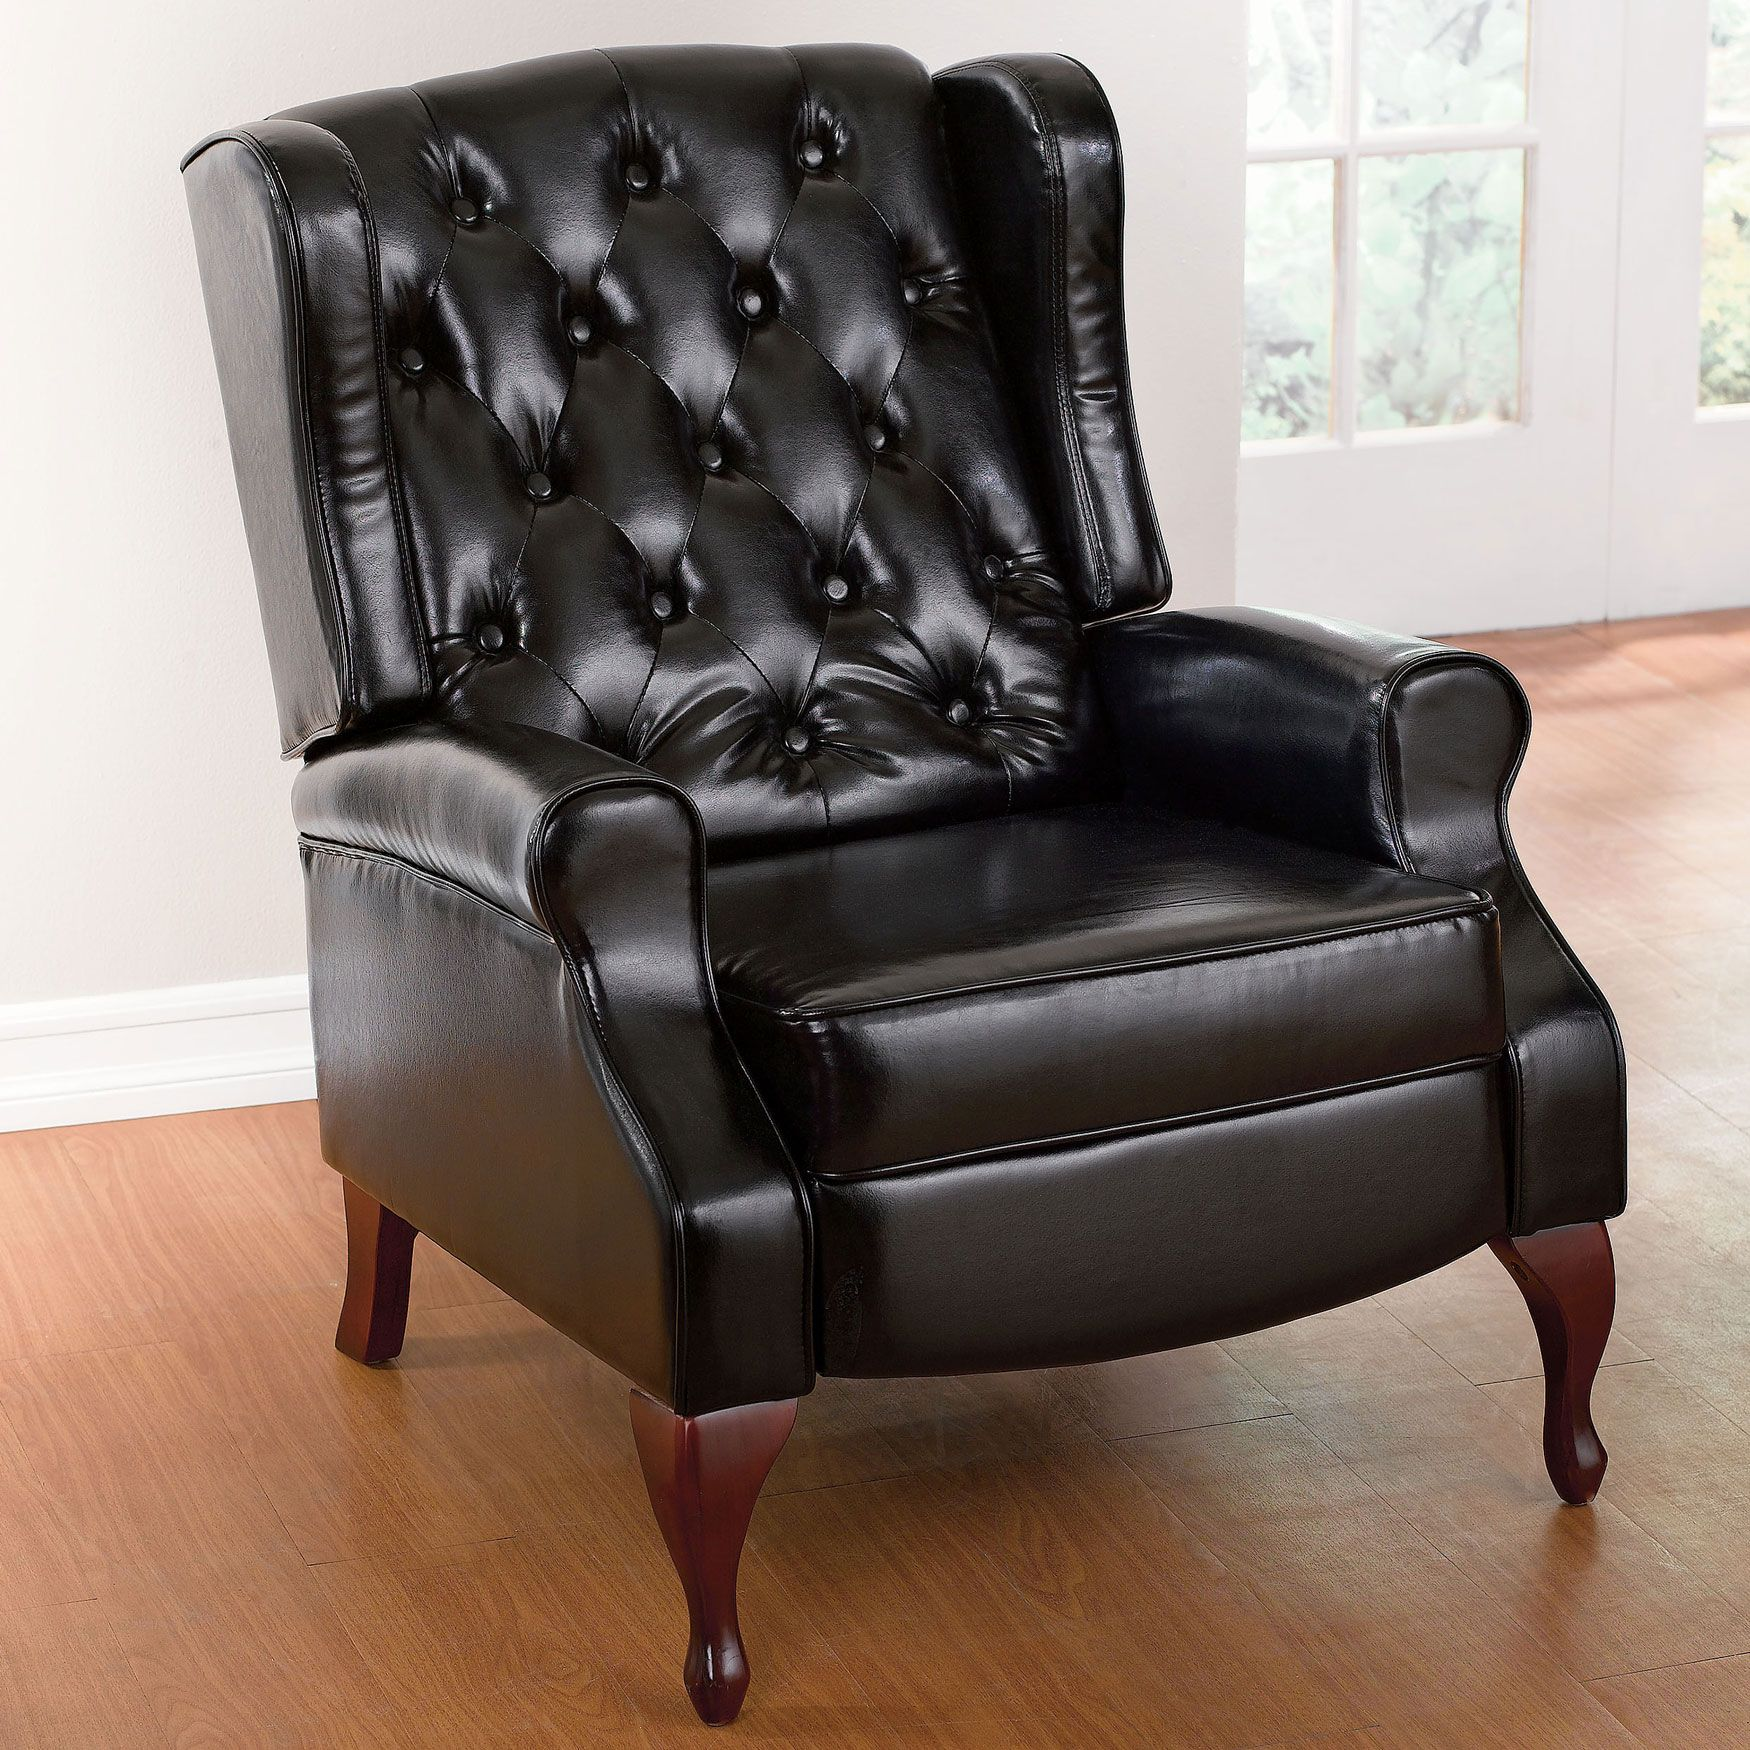 Queen Anne Style Tufted Wingback Recliner | Plus Size Extra Large Chairs u0026 Seating | OneStopPlus : queen anne style recliner chair - islam-shia.org